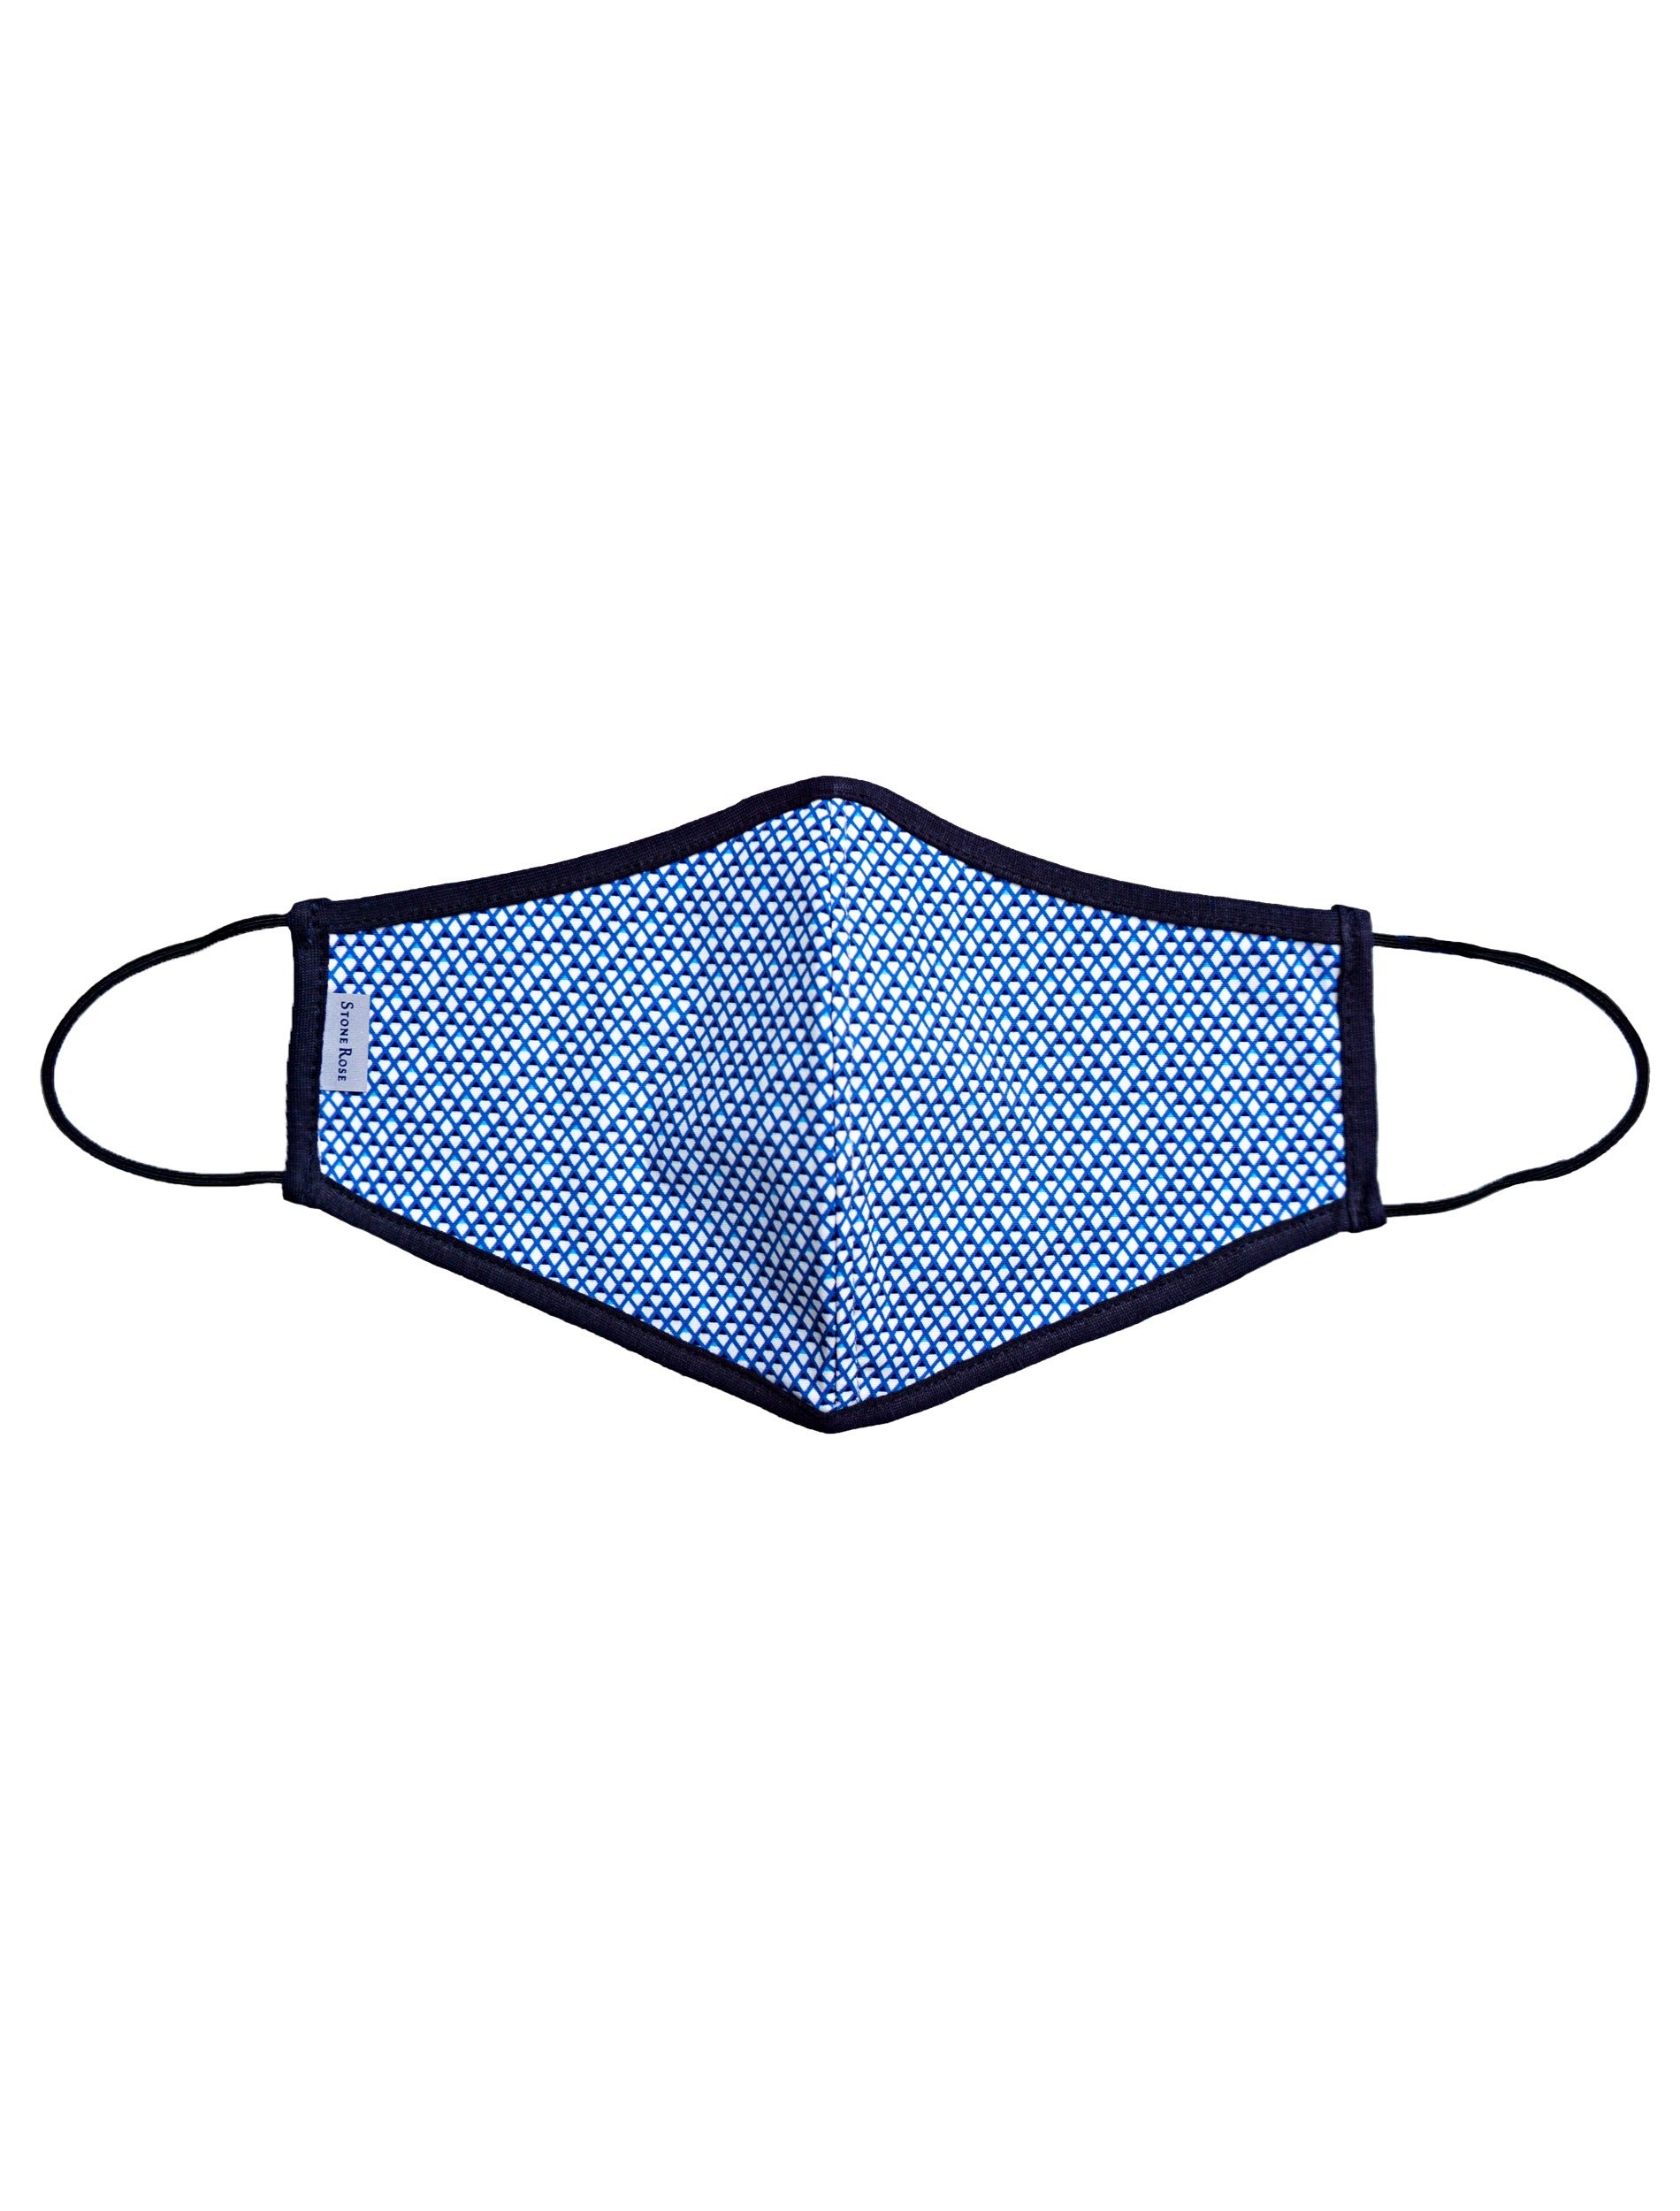 Blue and White Diamond Print - Reusable Lighweight Face Mask